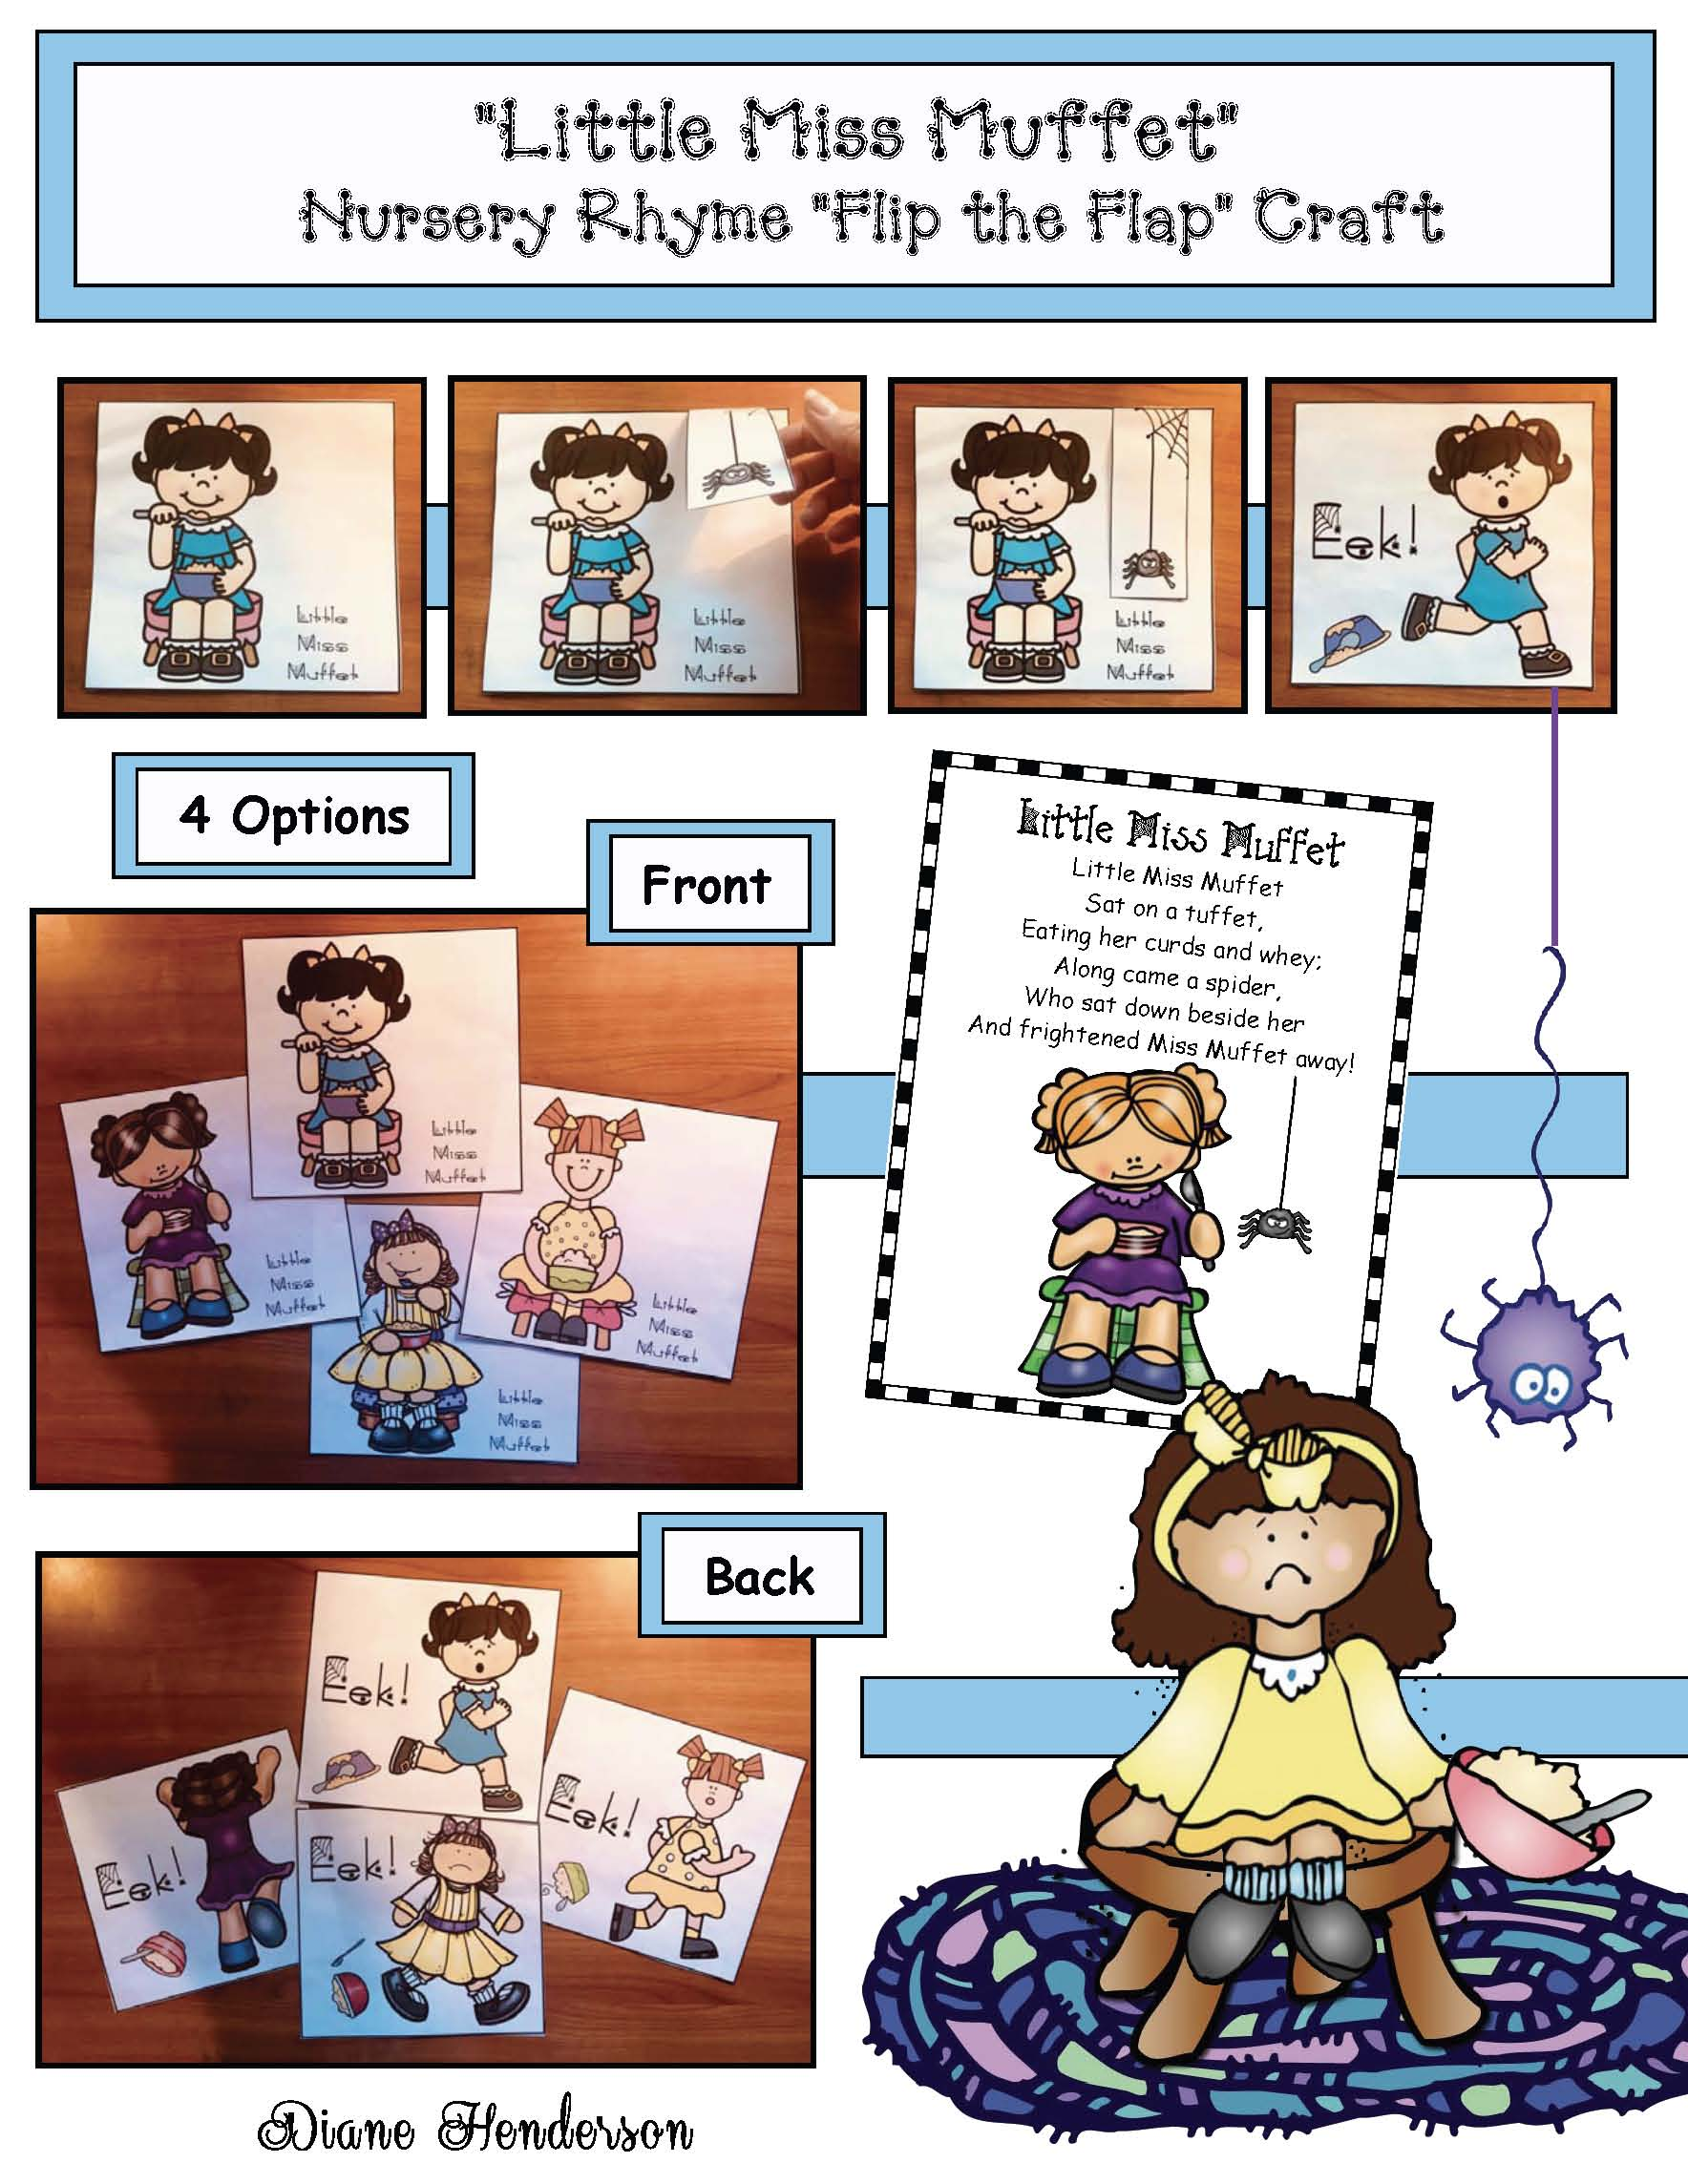 nursery rhyme activities, little miss muffet activities, nursery rhyme crafts, nursery rhyme posters, spider activities, spider crafts